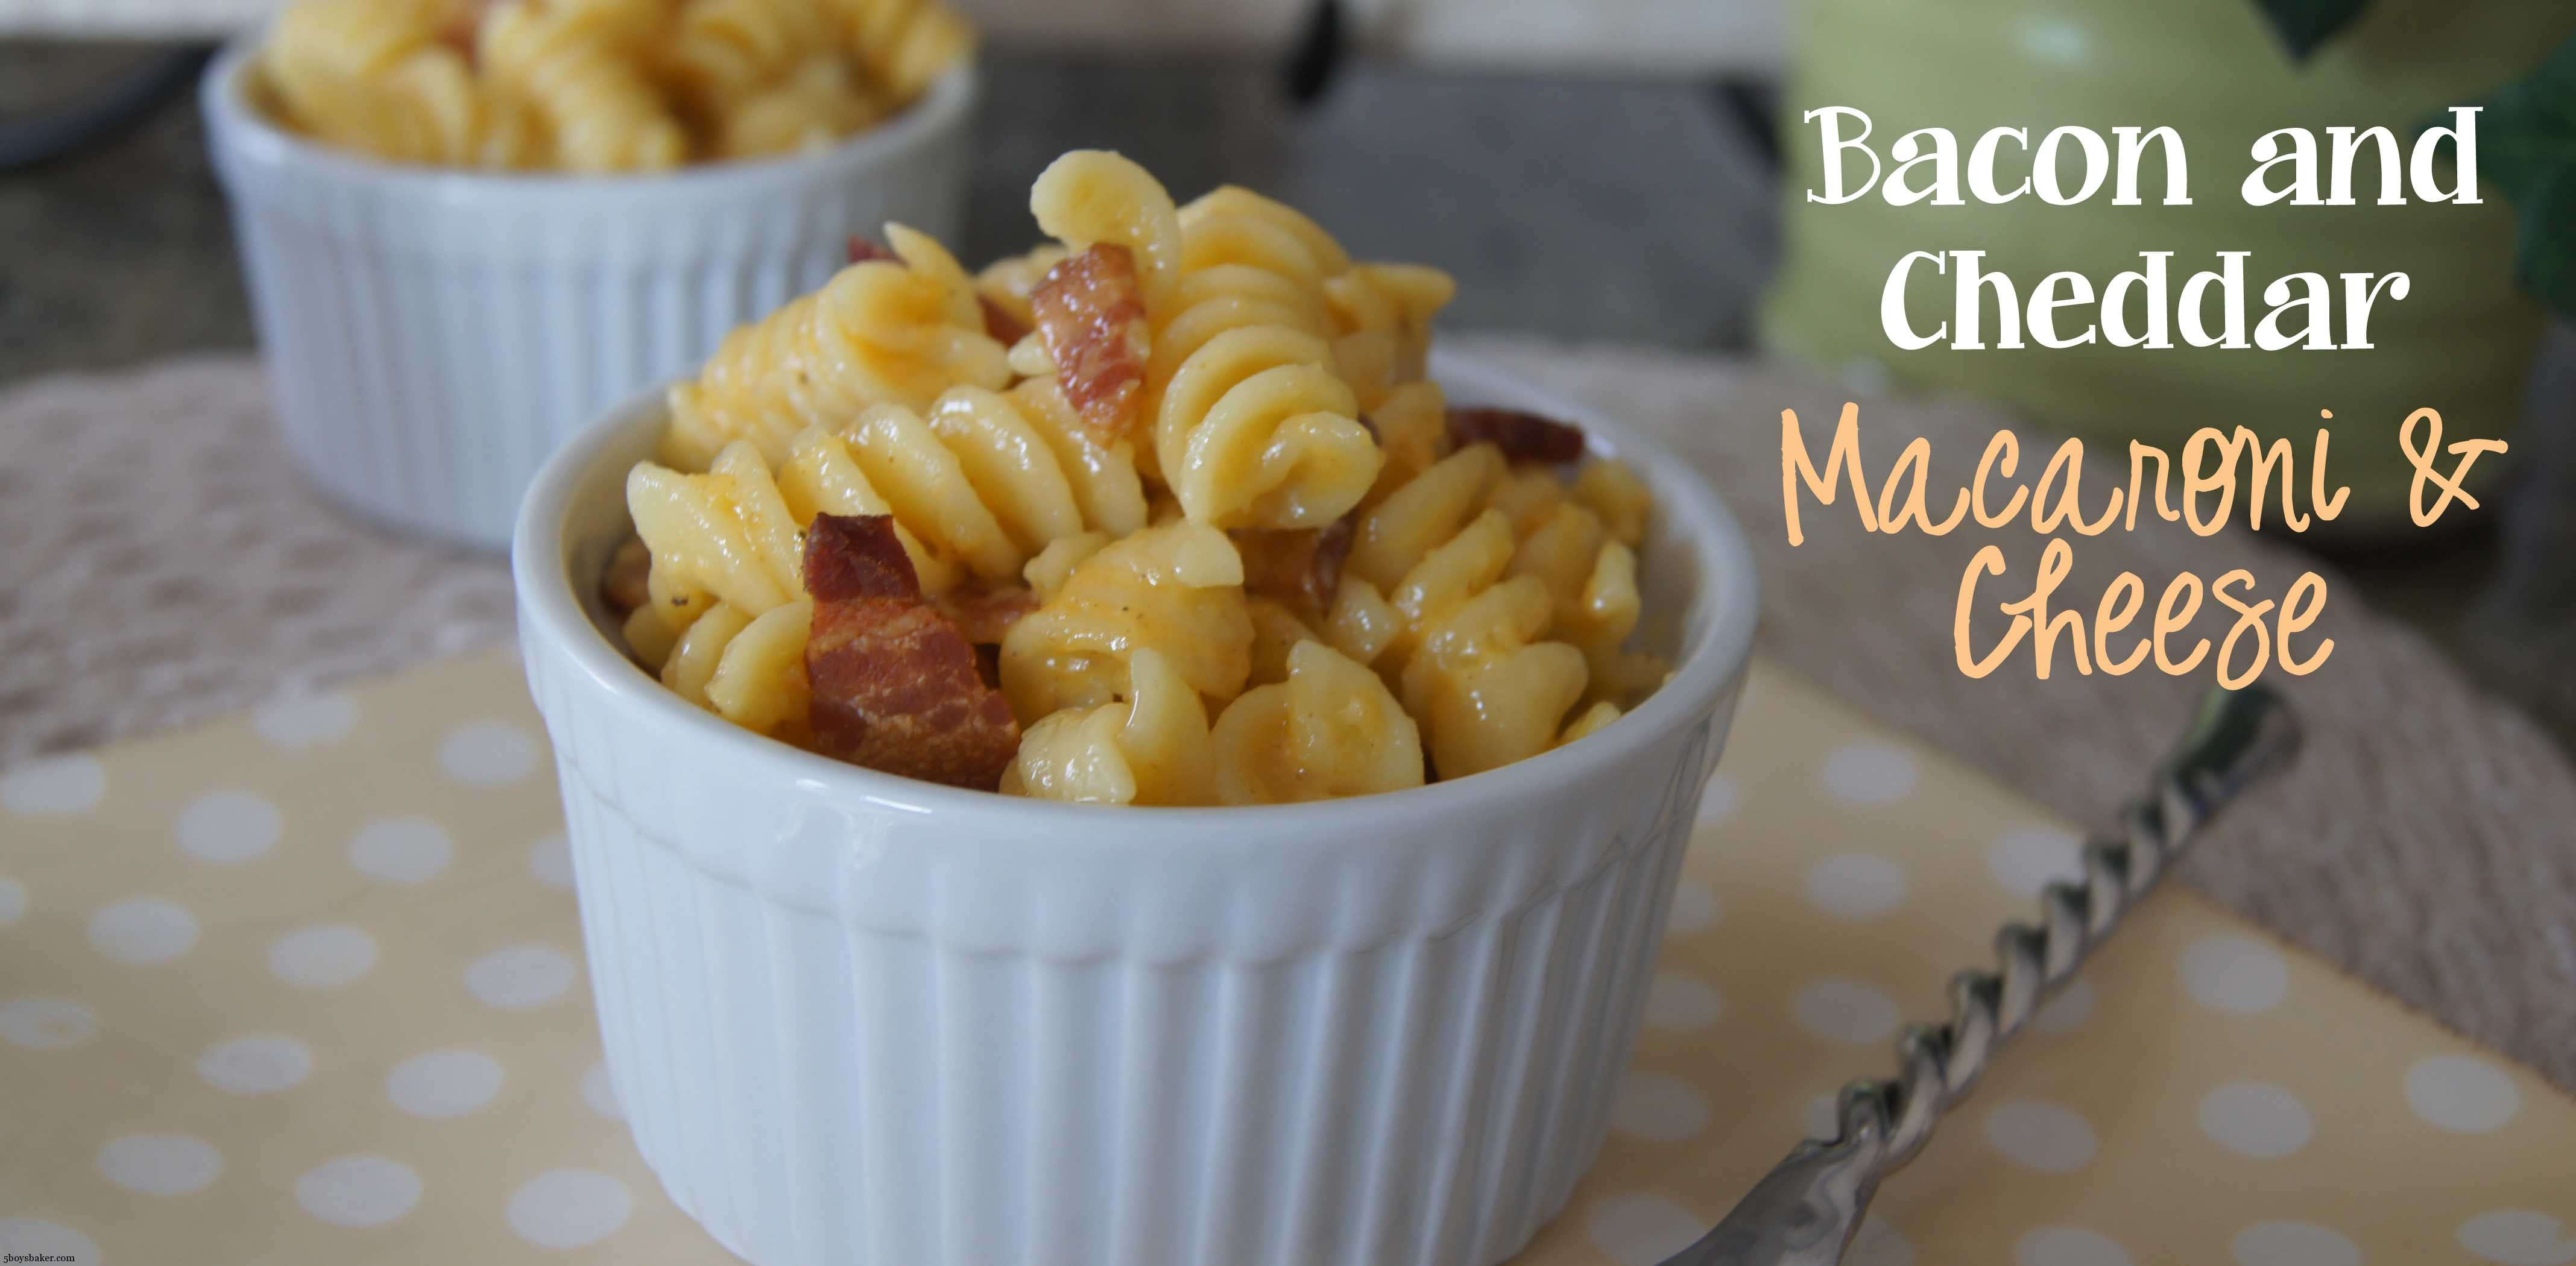 Bacon and Cheddar Macaroni & Cheese - 5BoysBaker